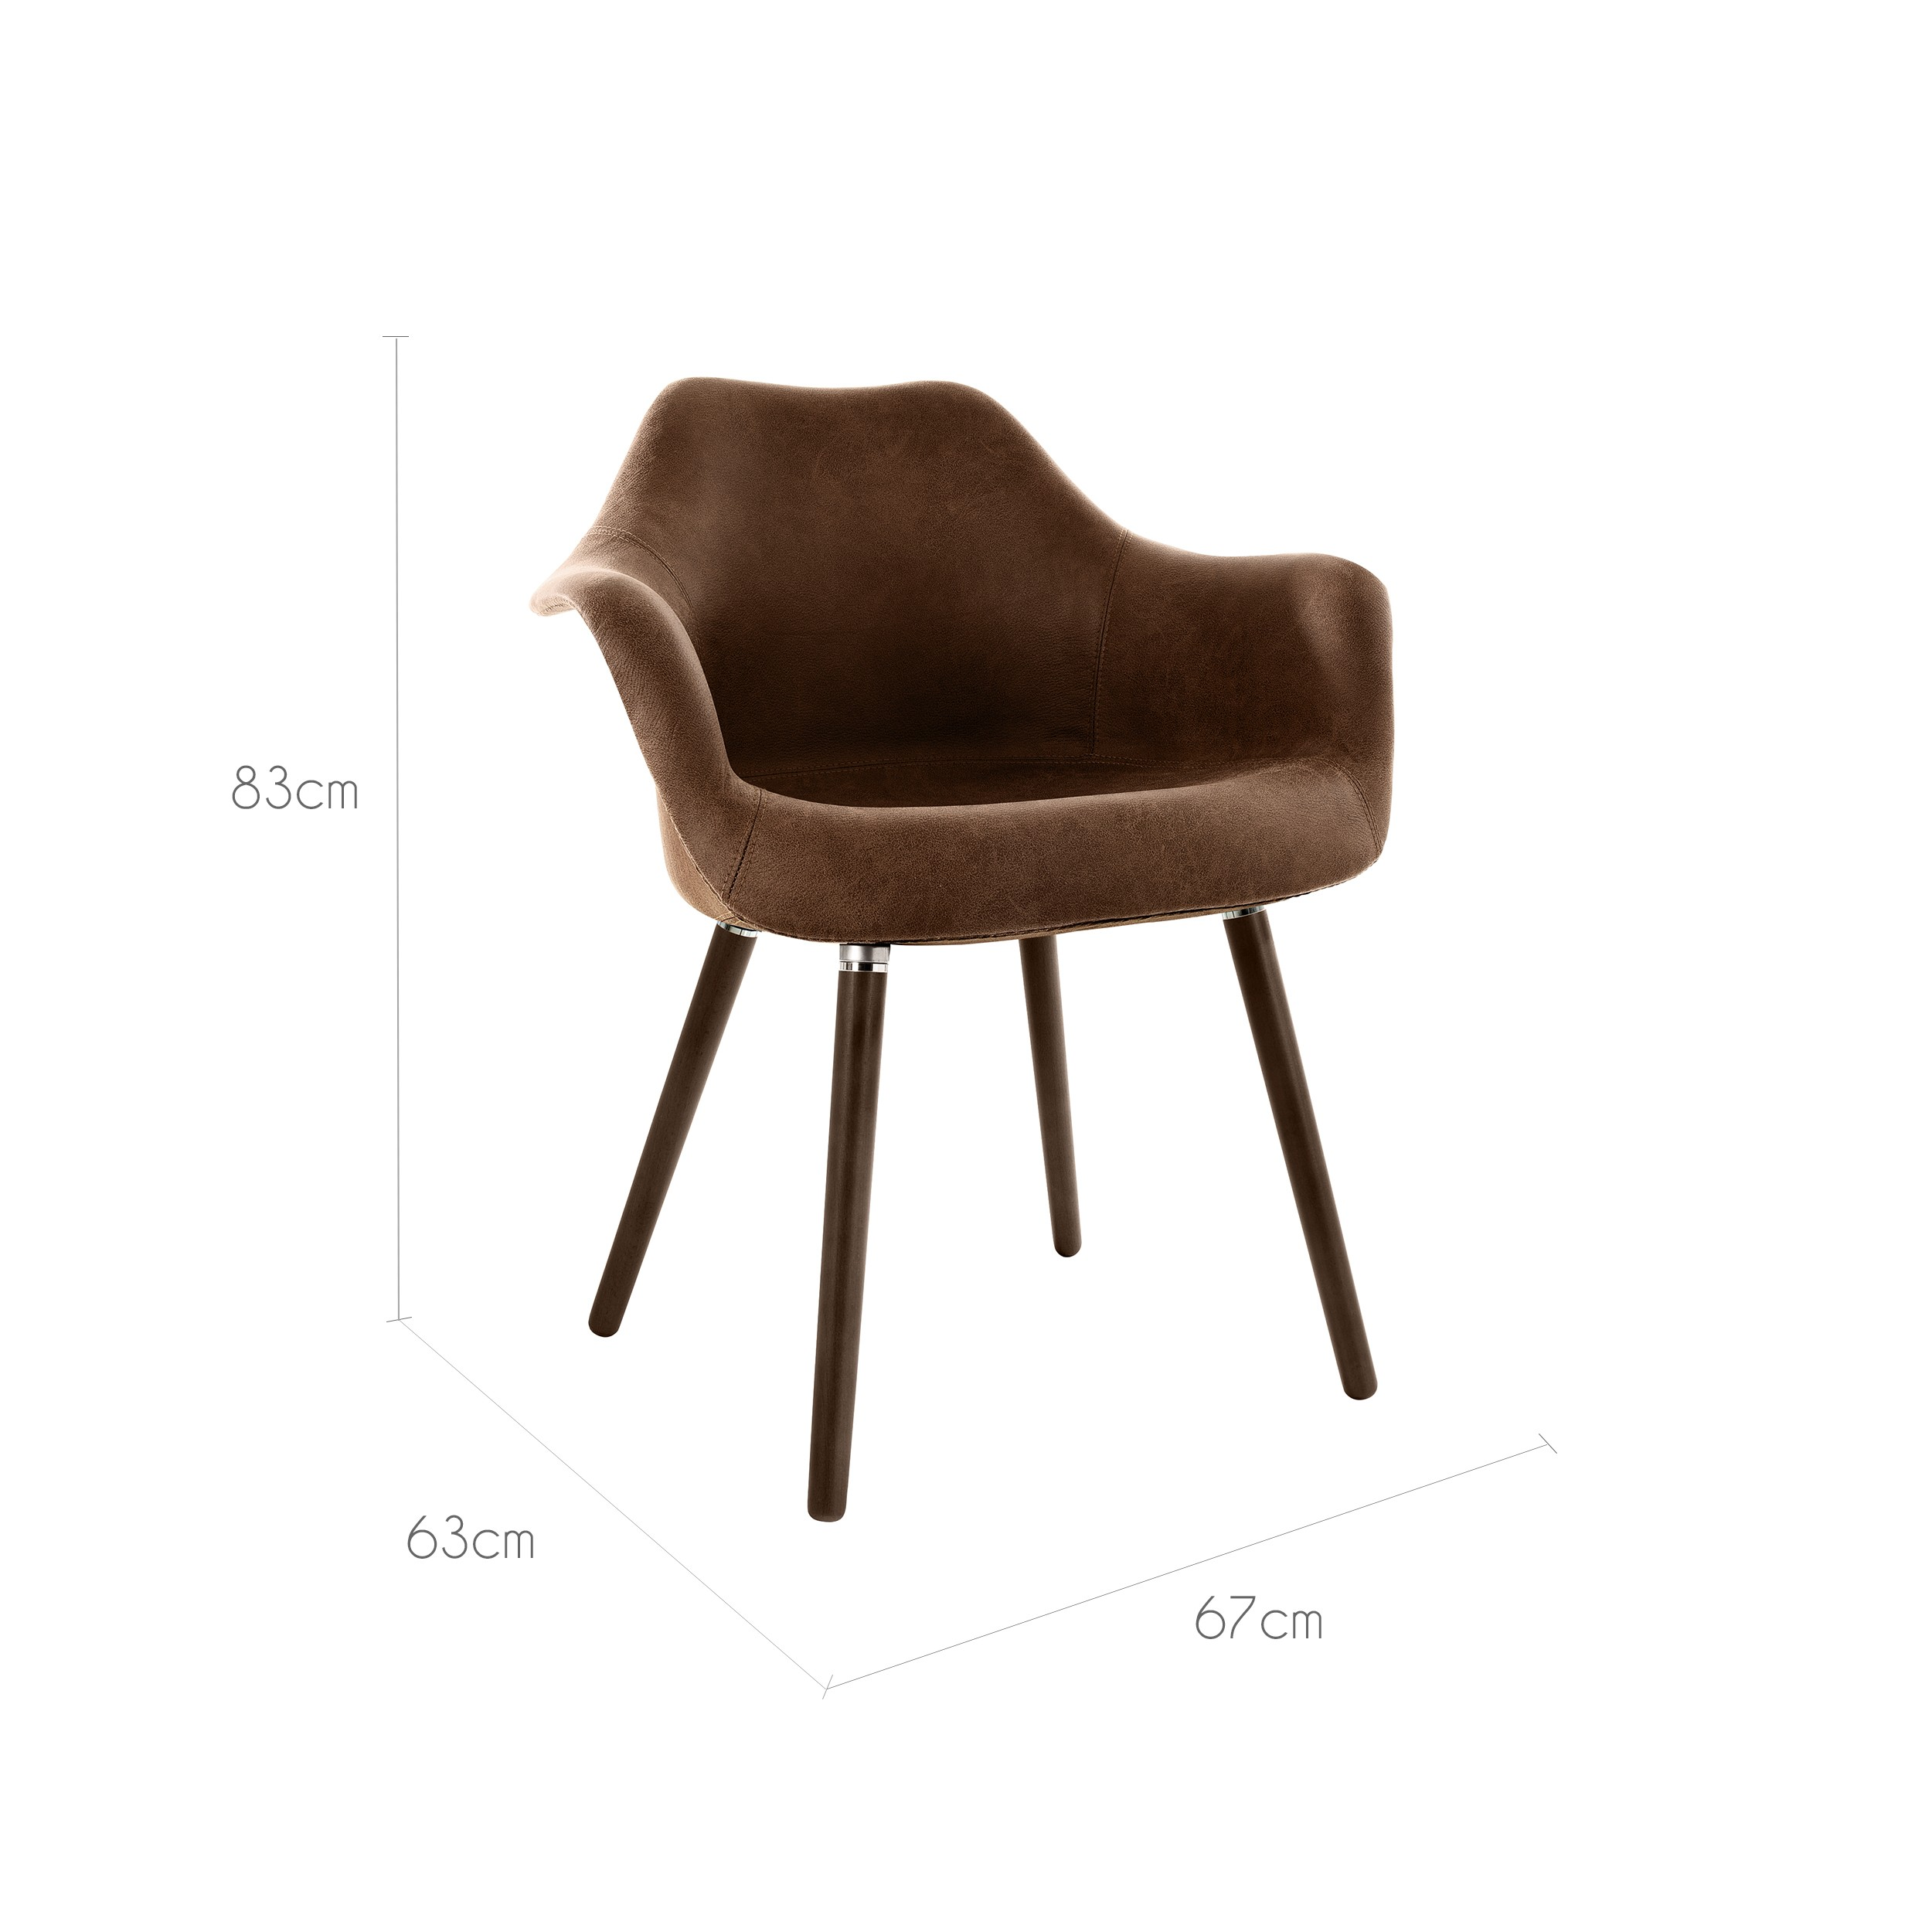 chaise anssen marron vieilli achetez les chaises anssen marron vieilli rdv d co. Black Bedroom Furniture Sets. Home Design Ideas